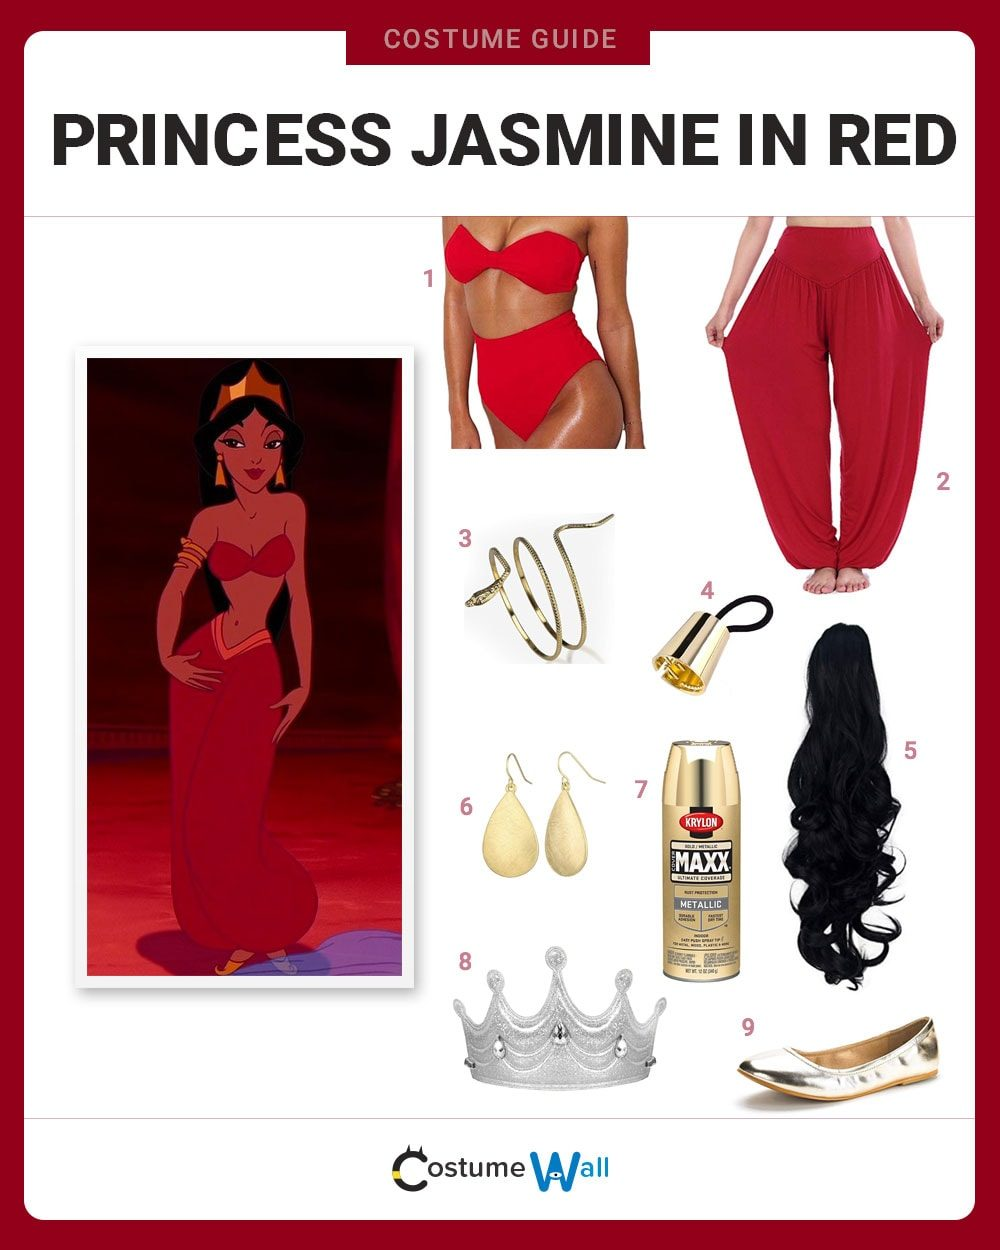 Red Princess Jasmine Costume Guide